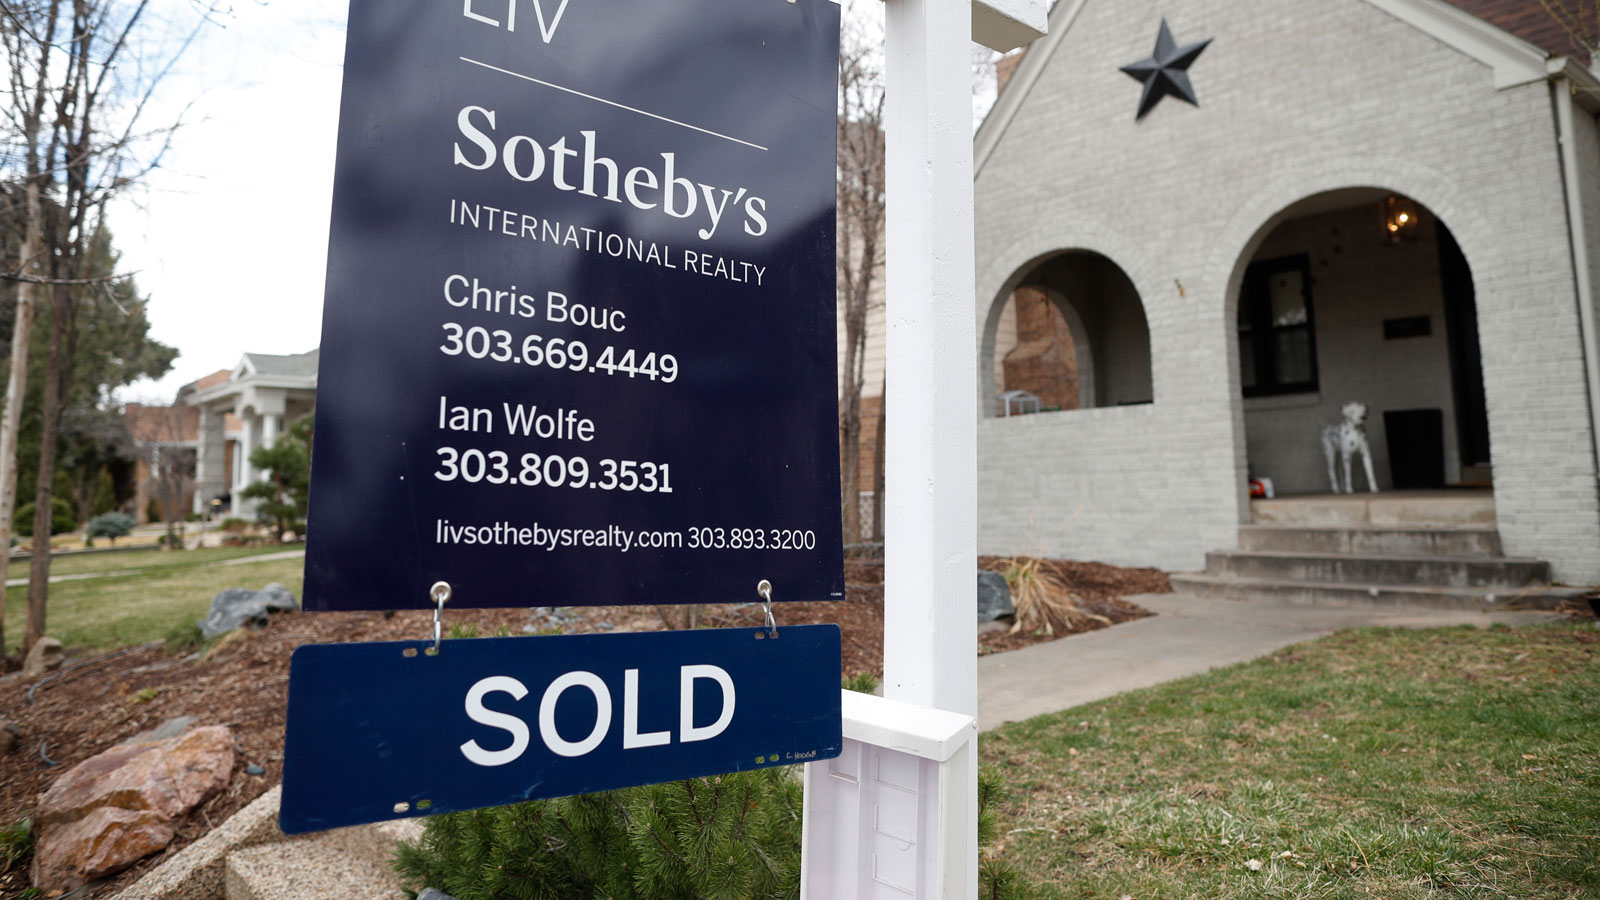 Homes are flying off the market in these US cities